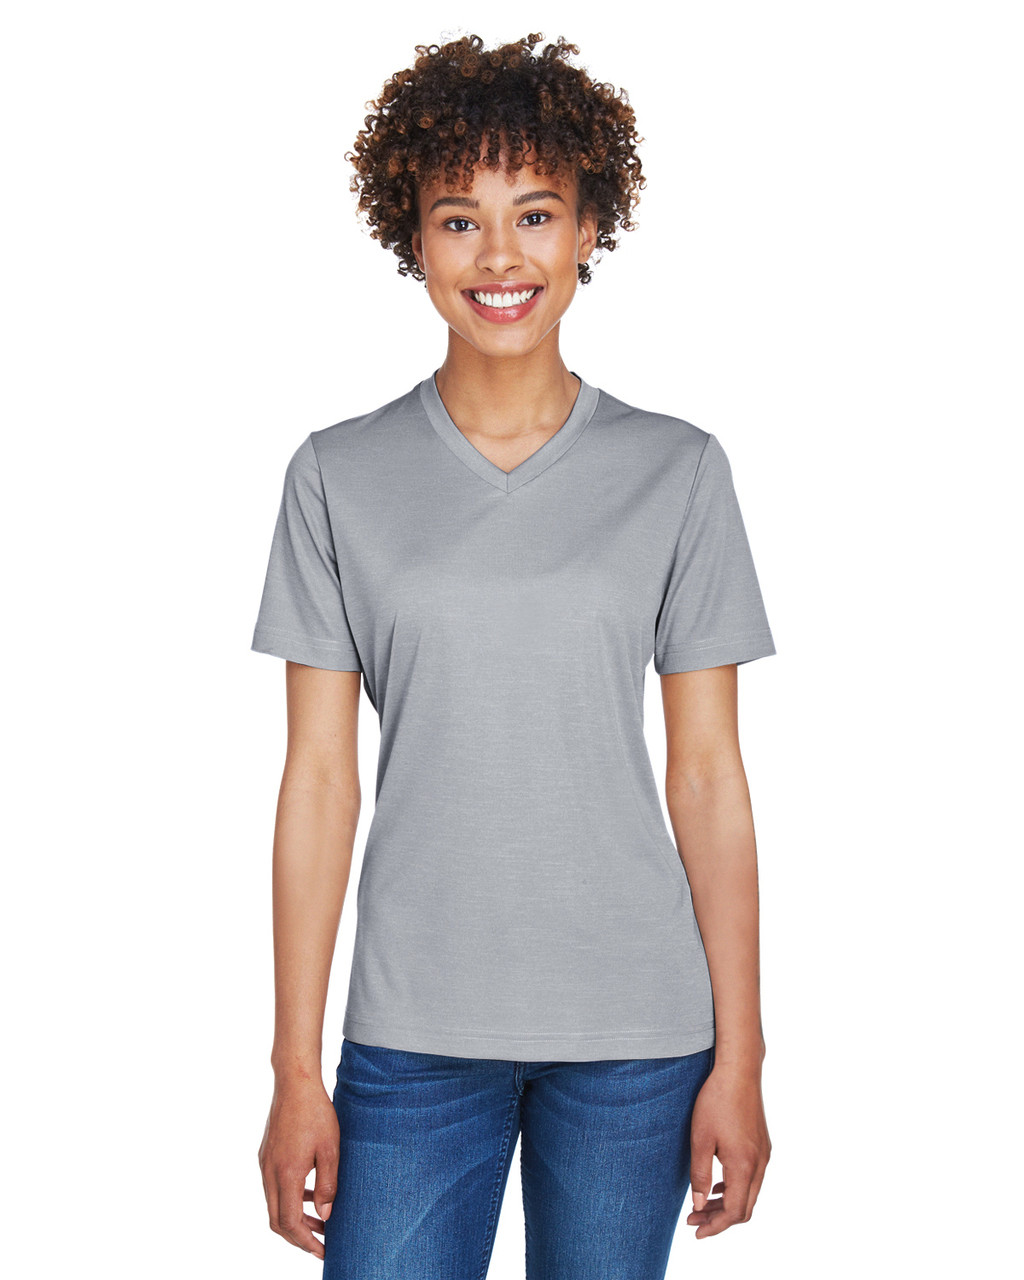 Athletic Heather - TT11HW Team 365 Ladies' Sonic Heather Performance T-Shirt | BlankClothing.ca